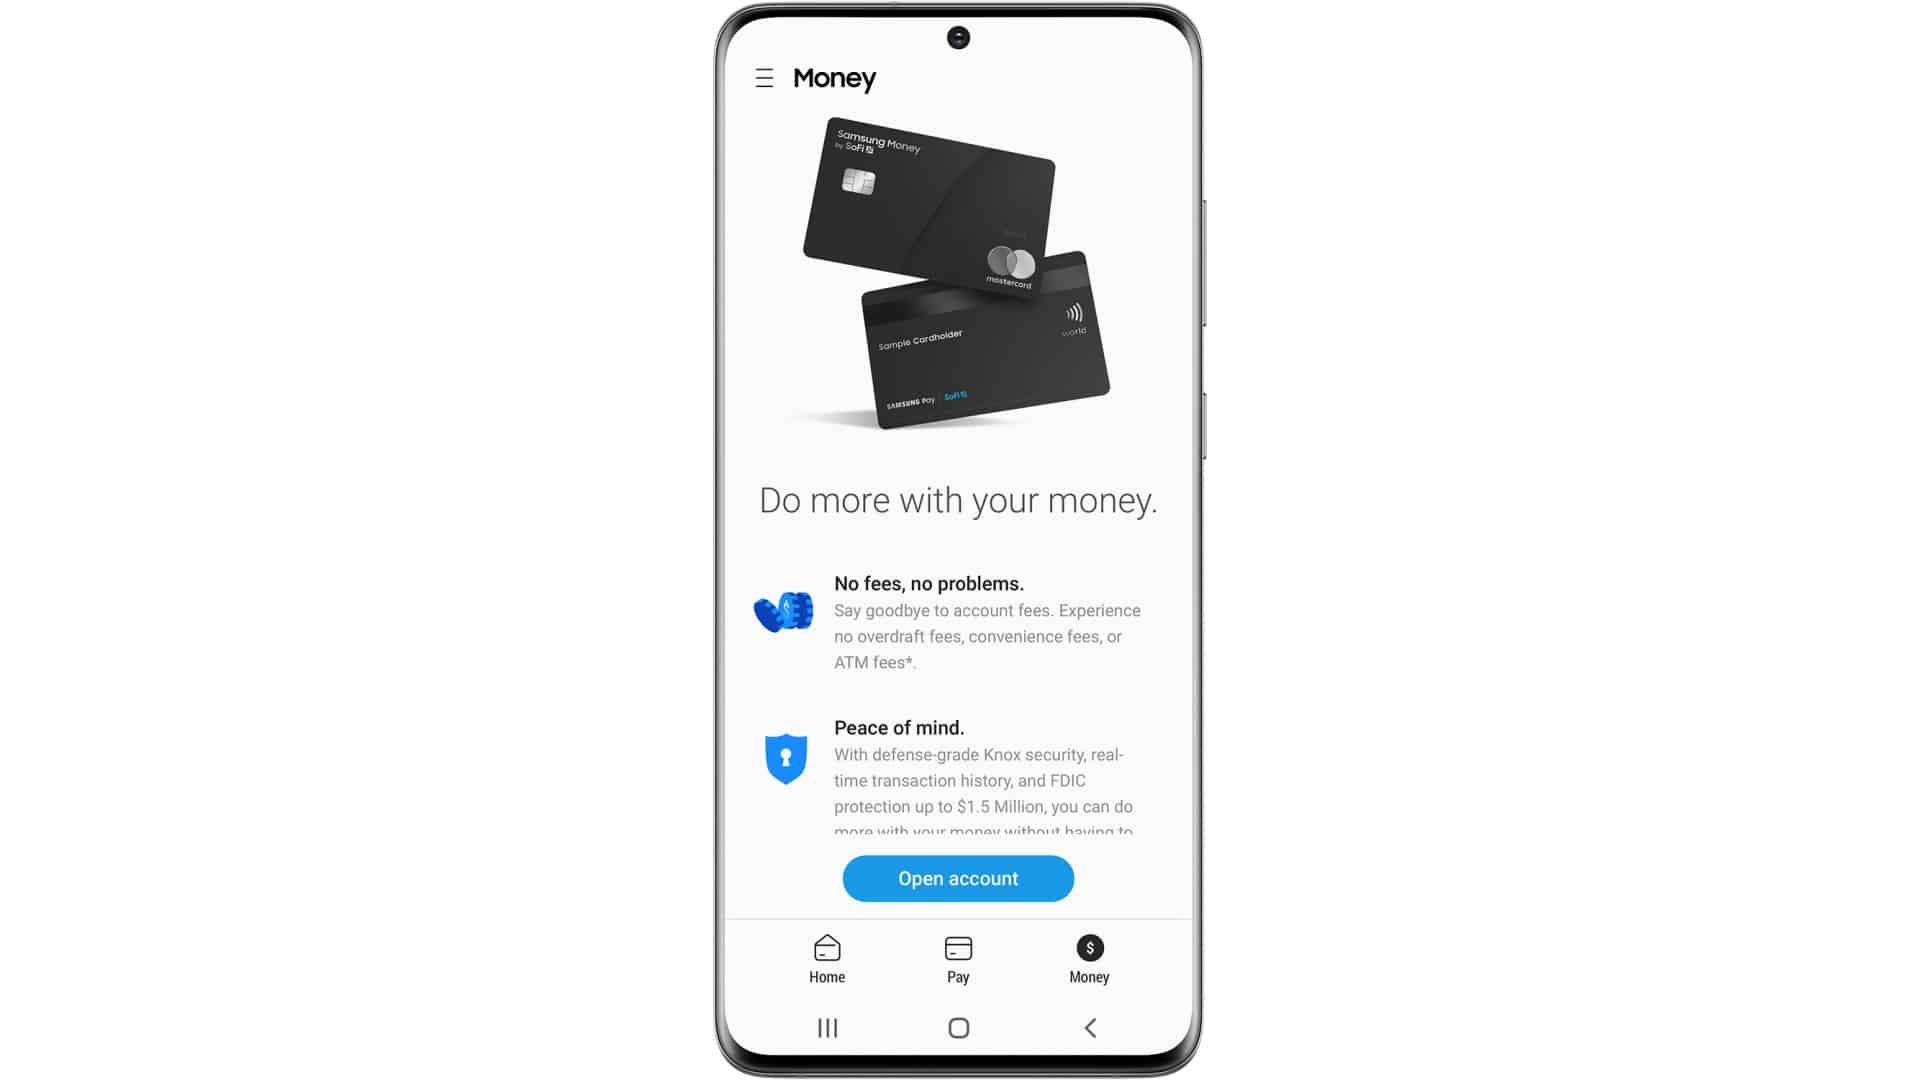 Sign Up For Samsung Money by SoFi And Get An Exclusive Benefit